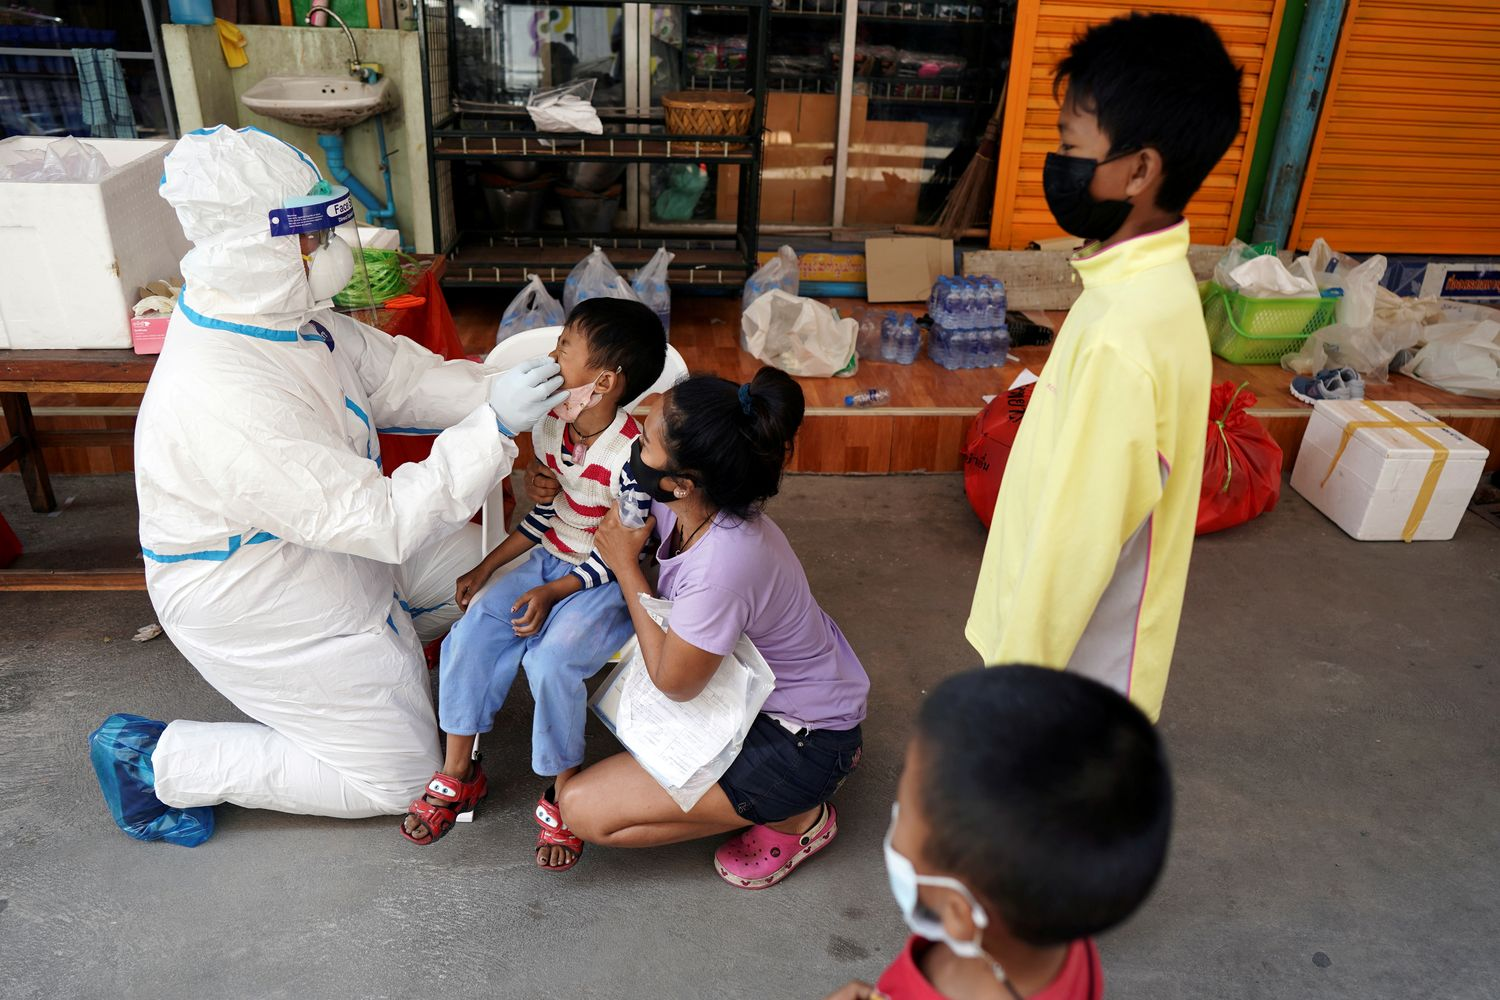 A healthcare worker takes a nasal swab sample of a child for a Covid-19 test at a migrant community in Samut Sakhon province on Dec 20. (Reuters photo)